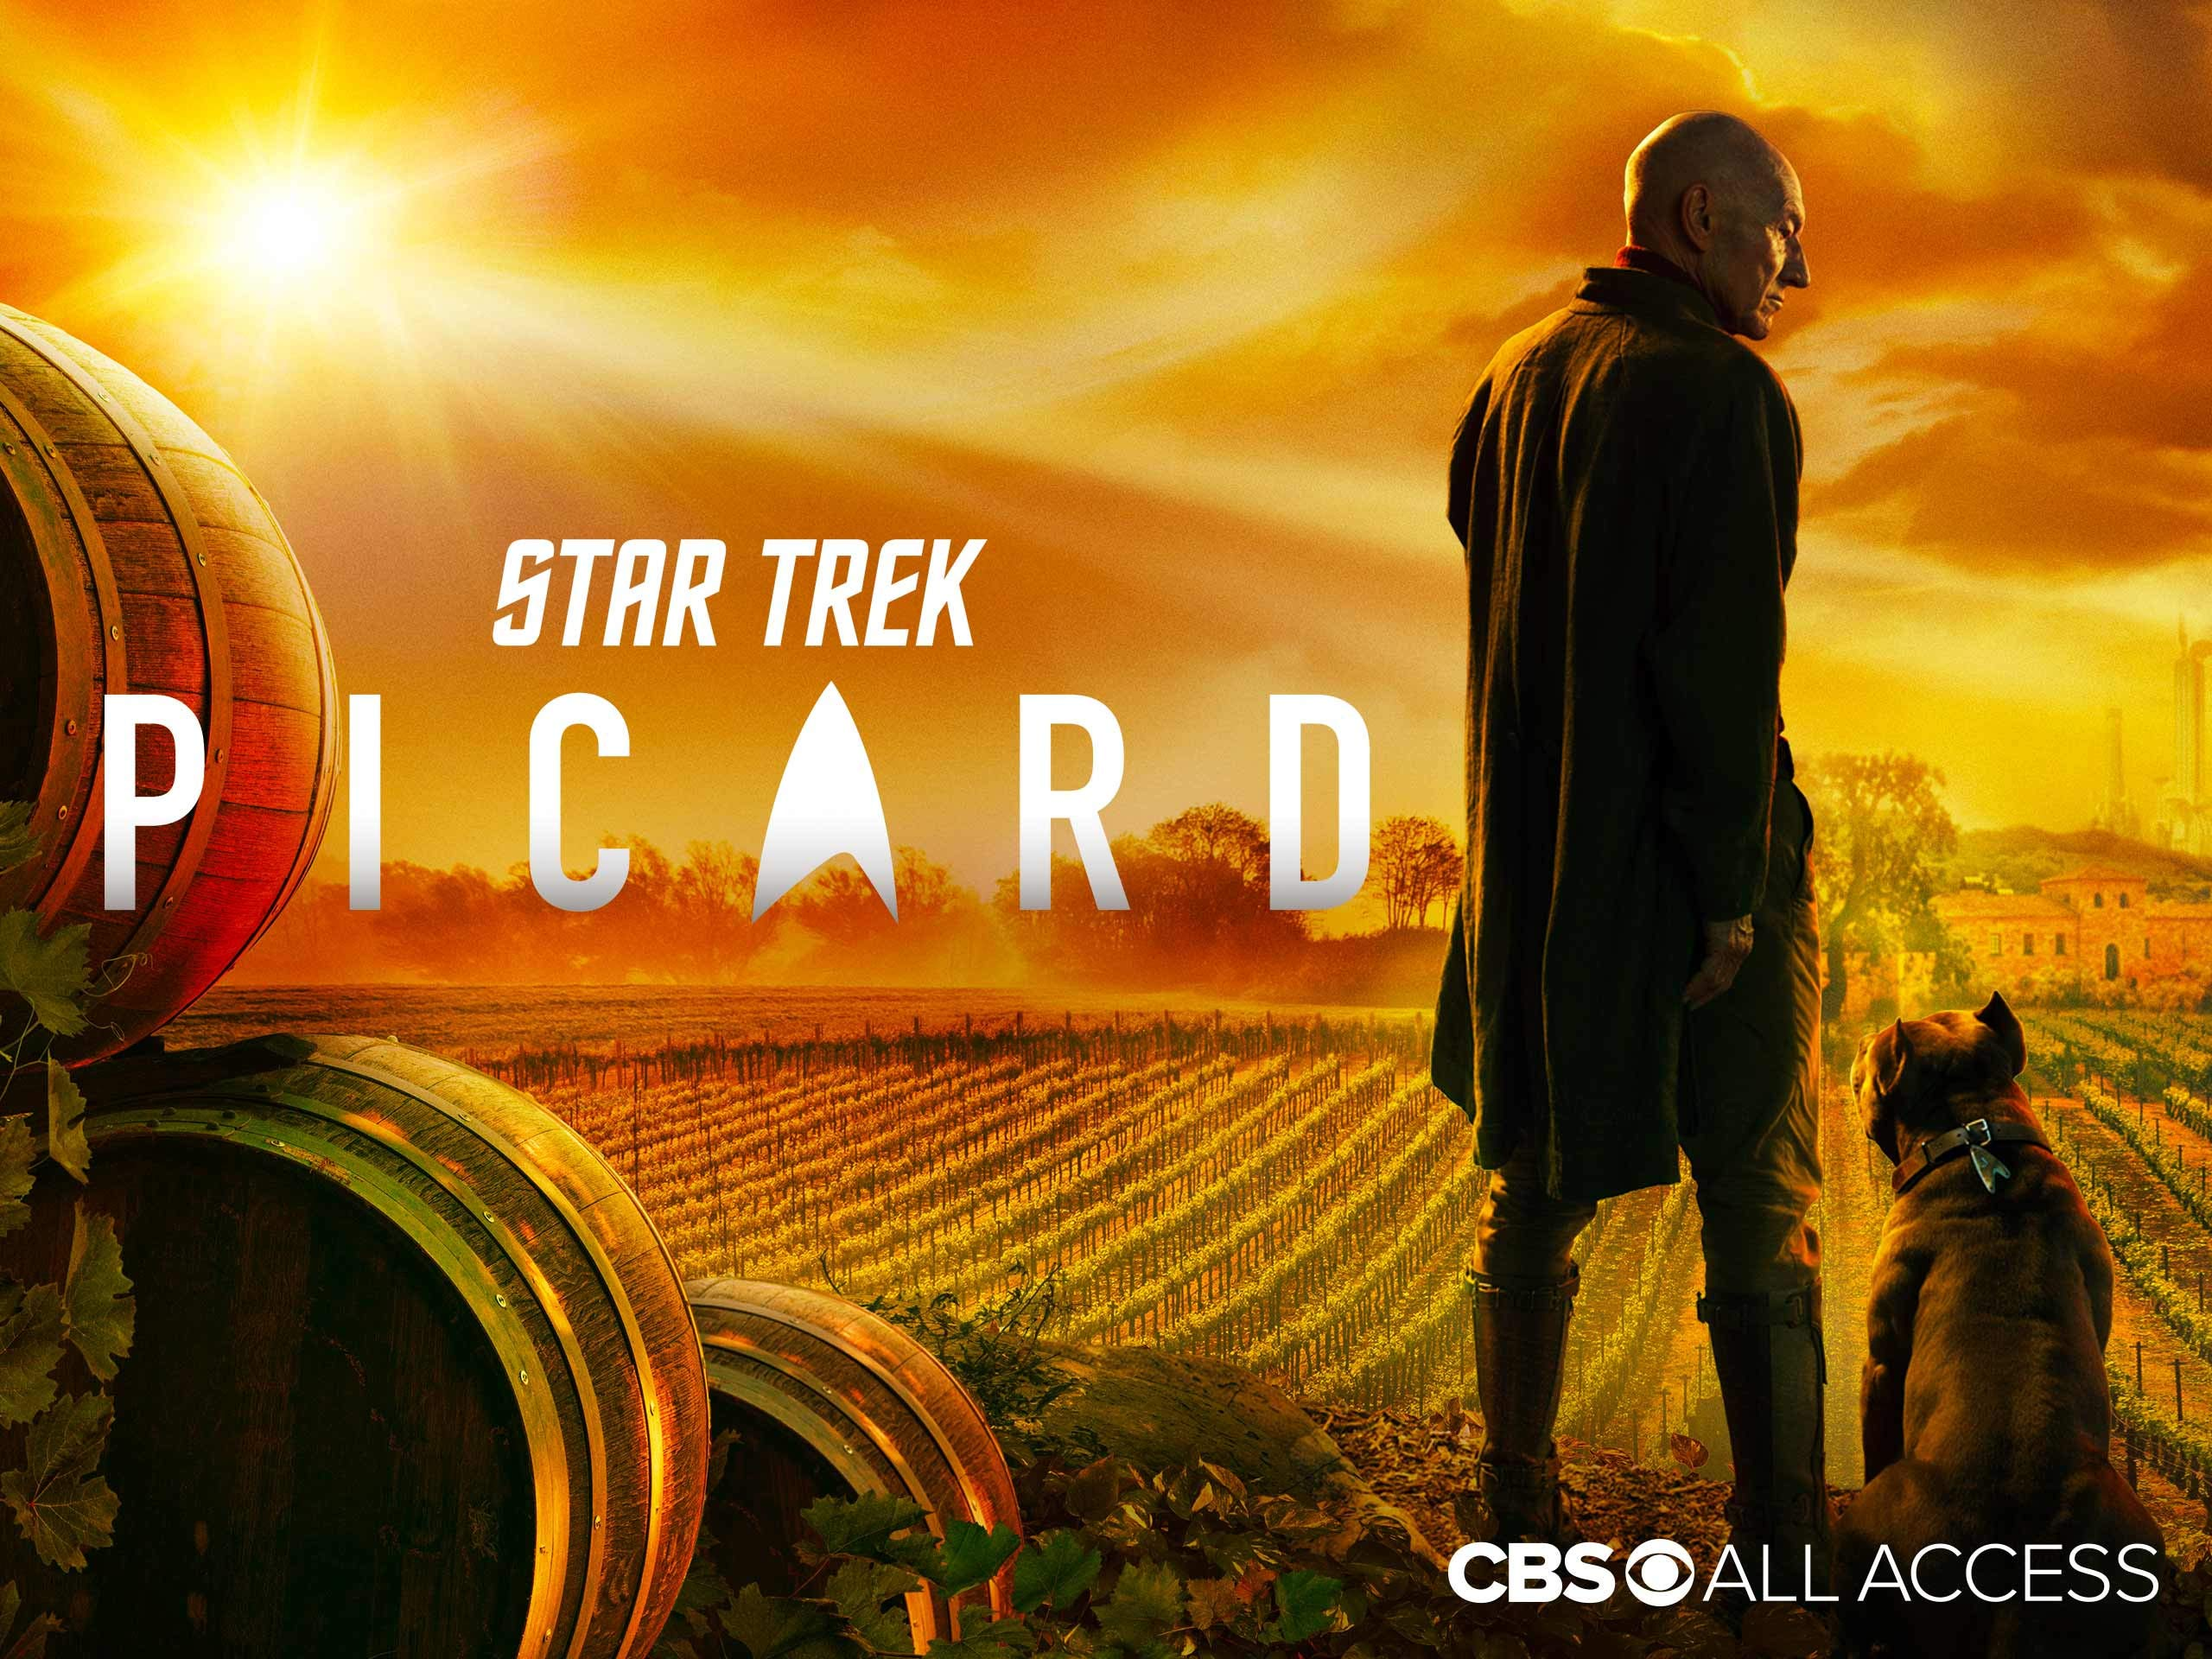 Star Trek Picard Preview CBS wallpaper